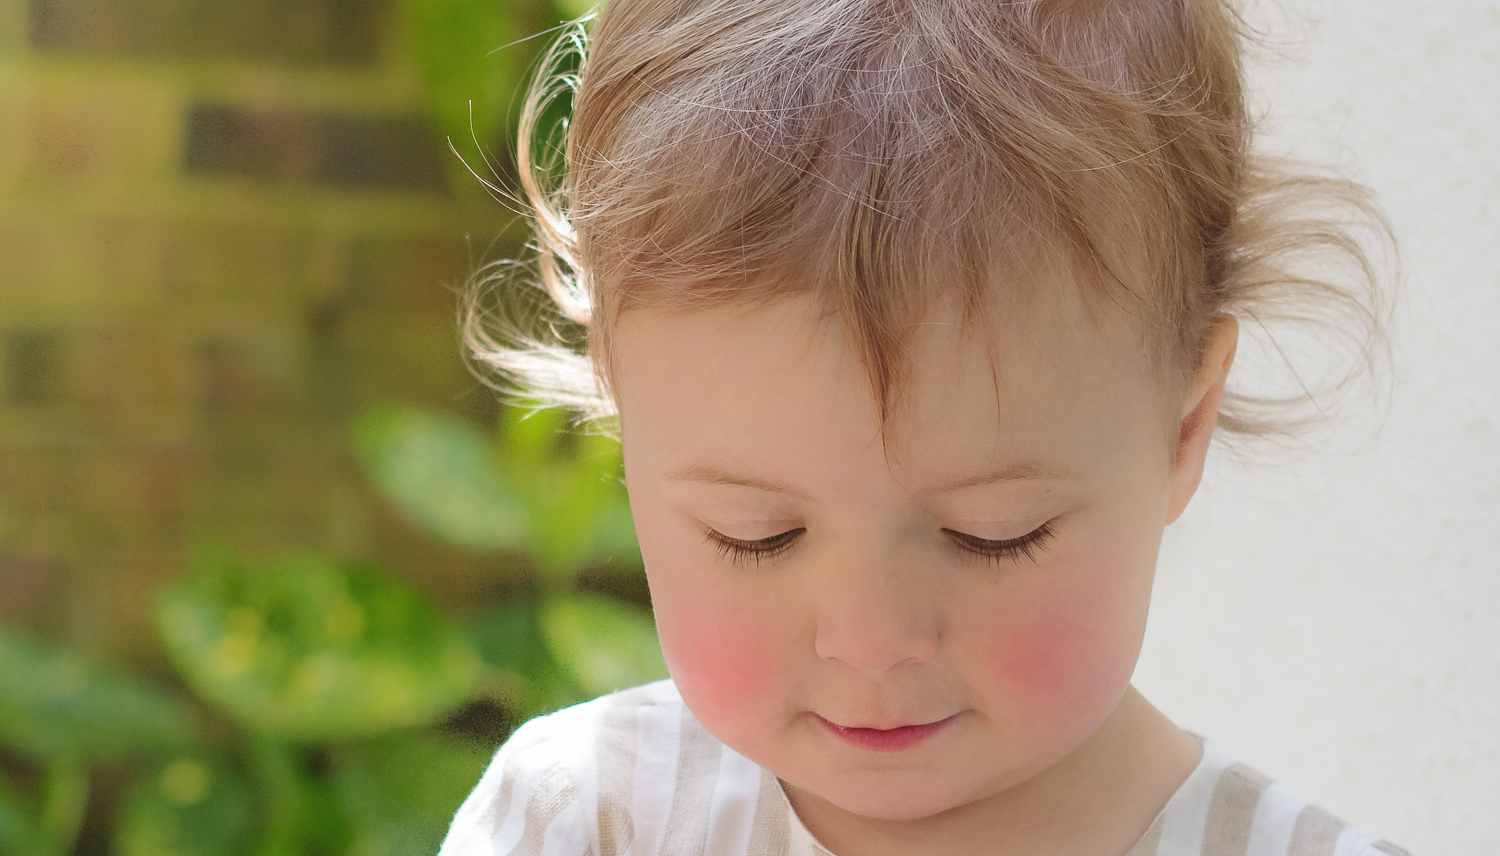 Professional children's party photography - a close up of the birthday girl, showing the little curls in her hair and her rosy cheeks